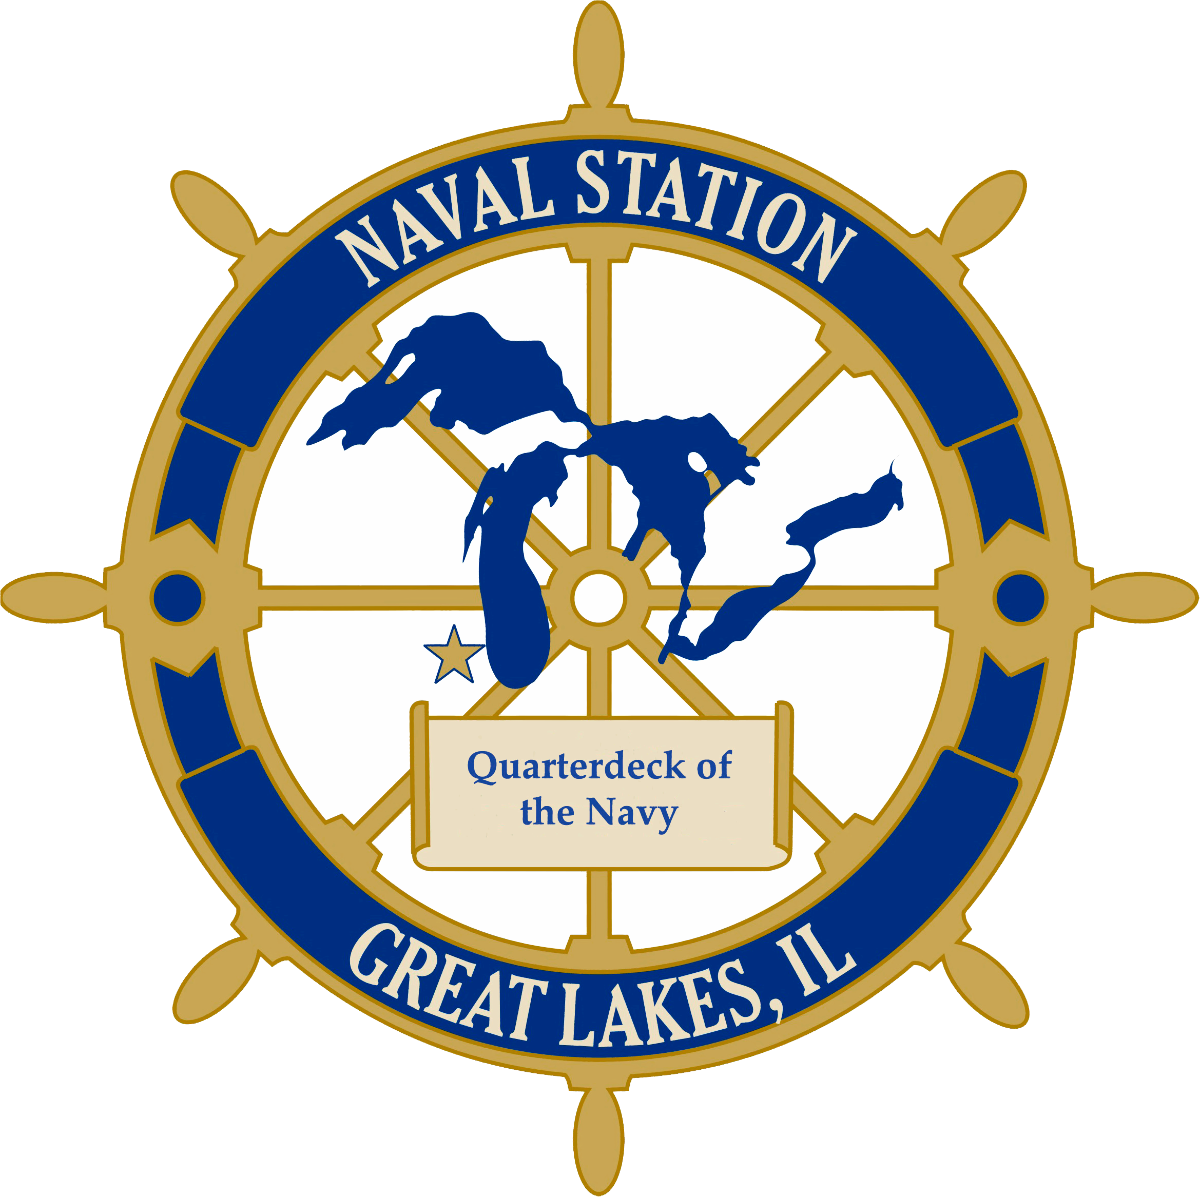 Electronics clipart electronics technician. Naval station great lakes